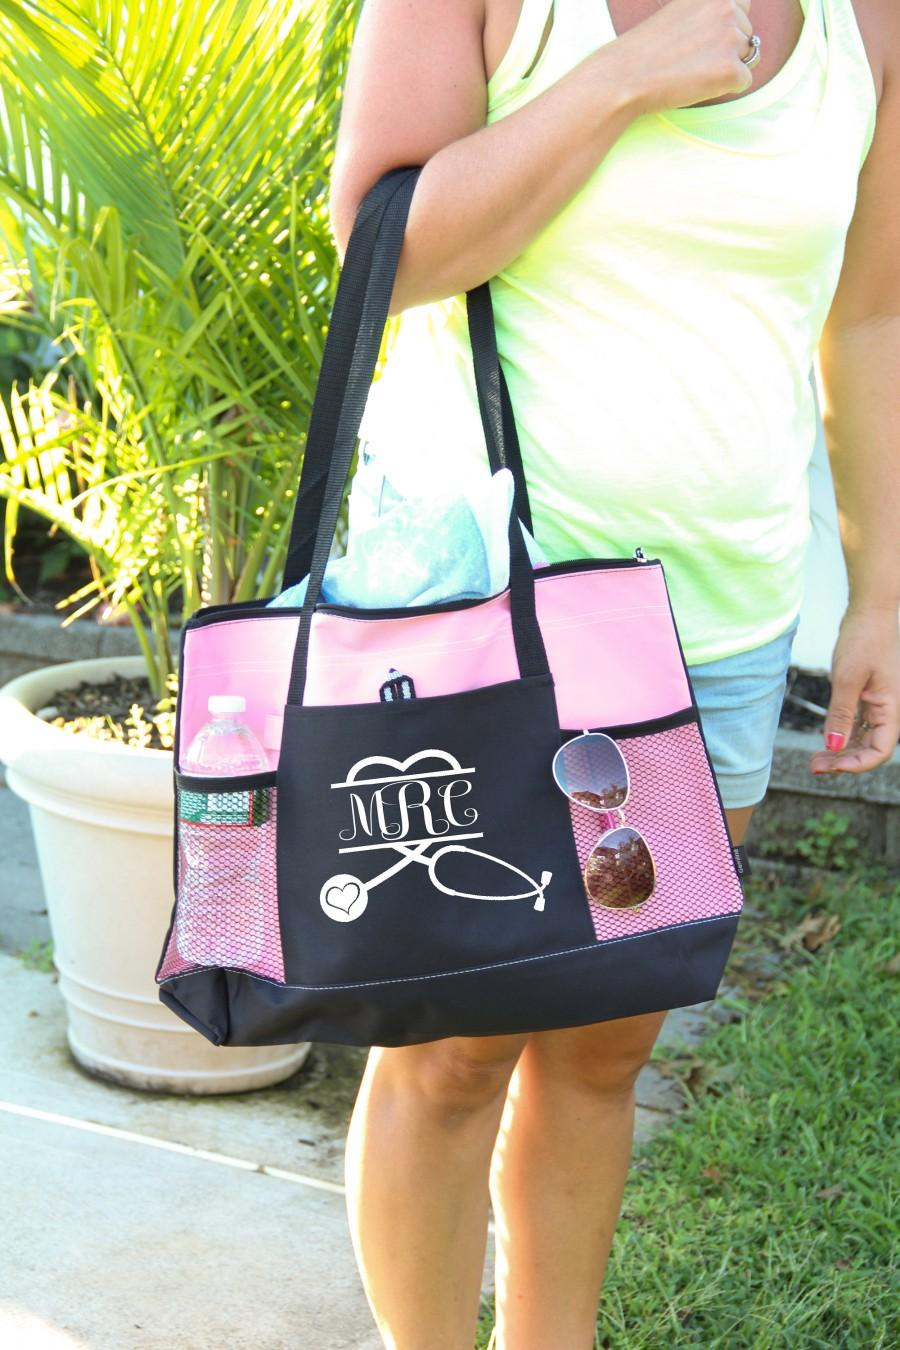 Wedding - Personalized Bag, Nurse Stethoscope Heart Bag personalized with monogram, Heavy tote bag, zippered, Heavy canvas, Carryall,Nurse Bag